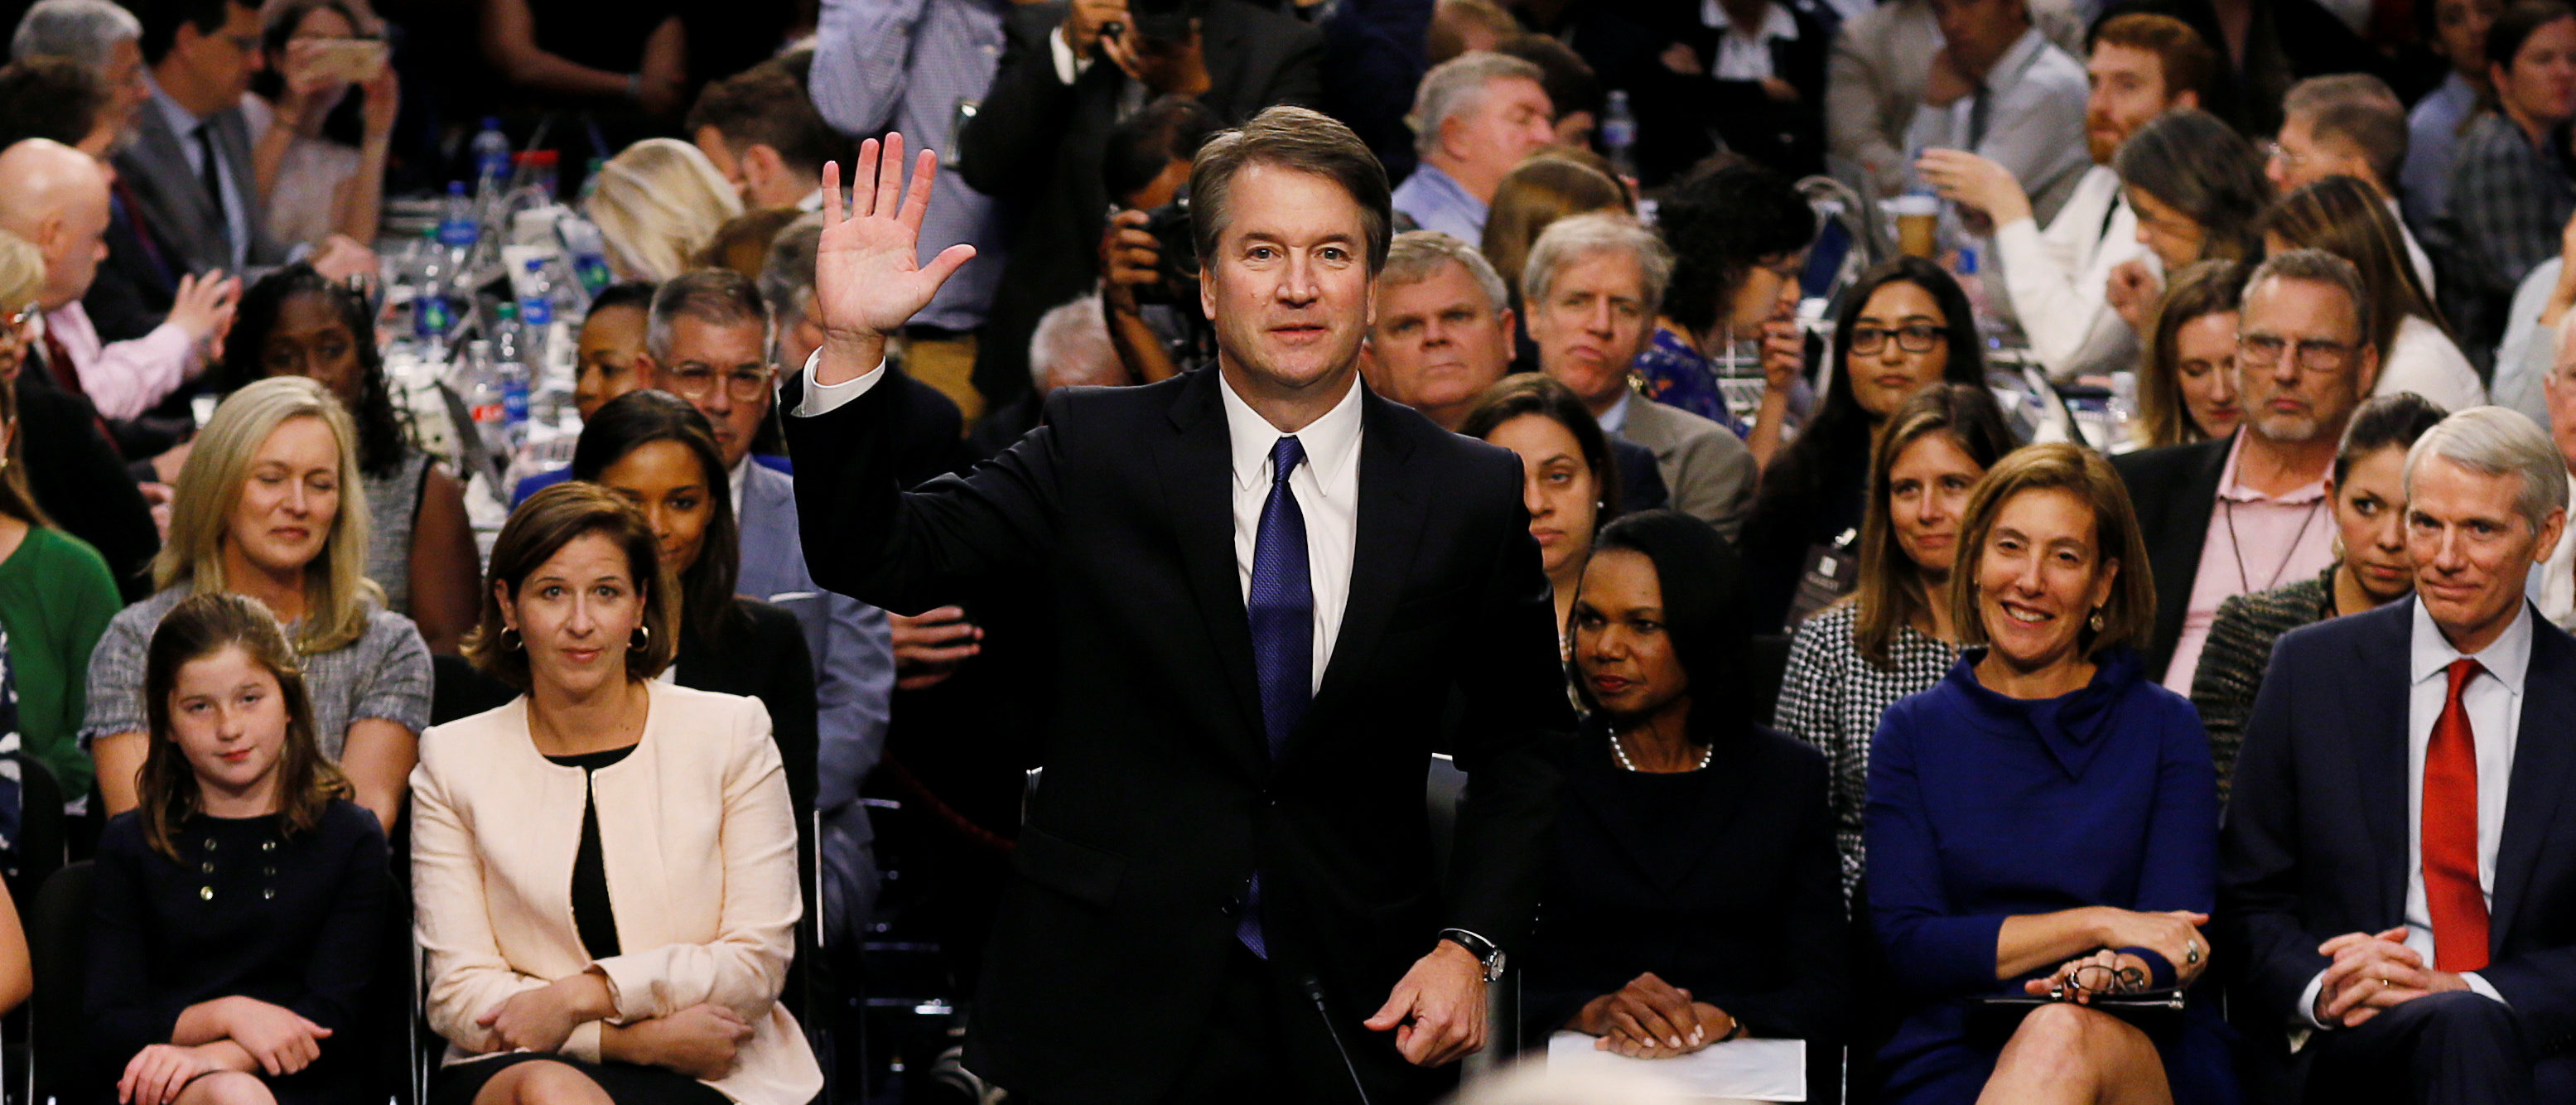 Trump Says Anti-Kavanaugh Protestors Are 'An Embarrassment To The Country'